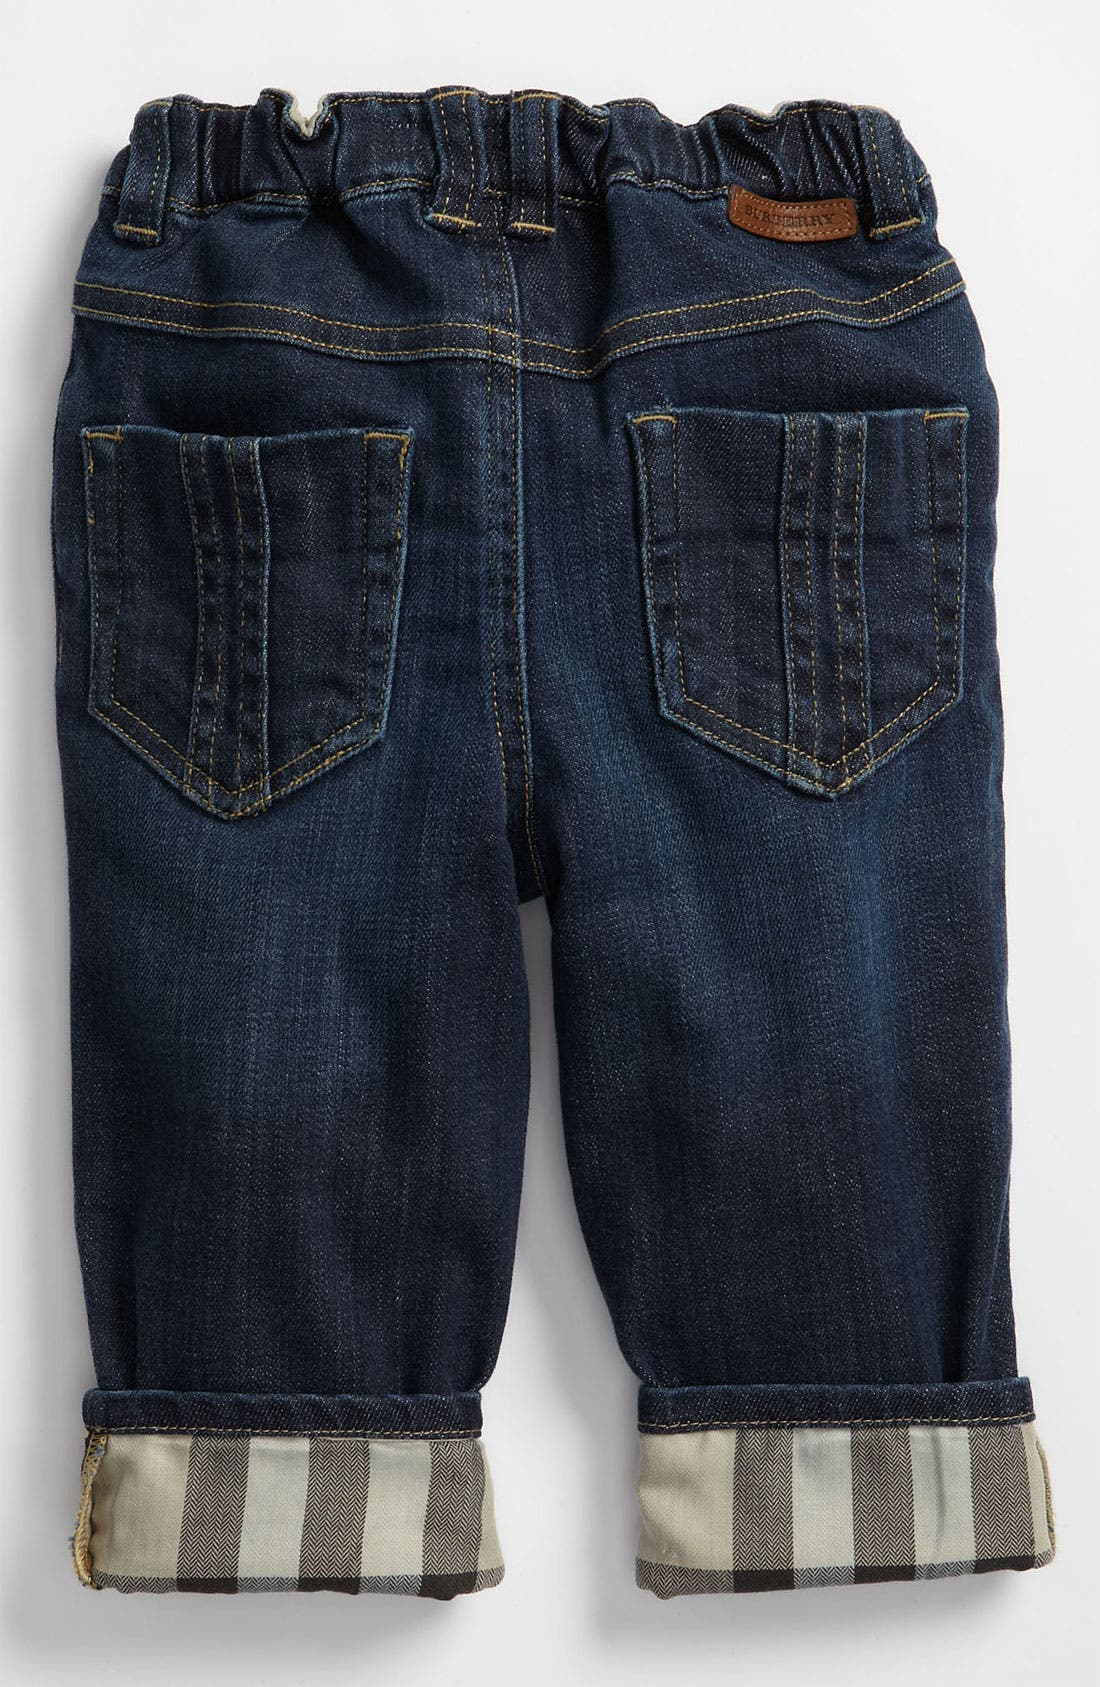 Alternate Image 1 Selected - Burberry Straight Leg Jeans (Toddler)